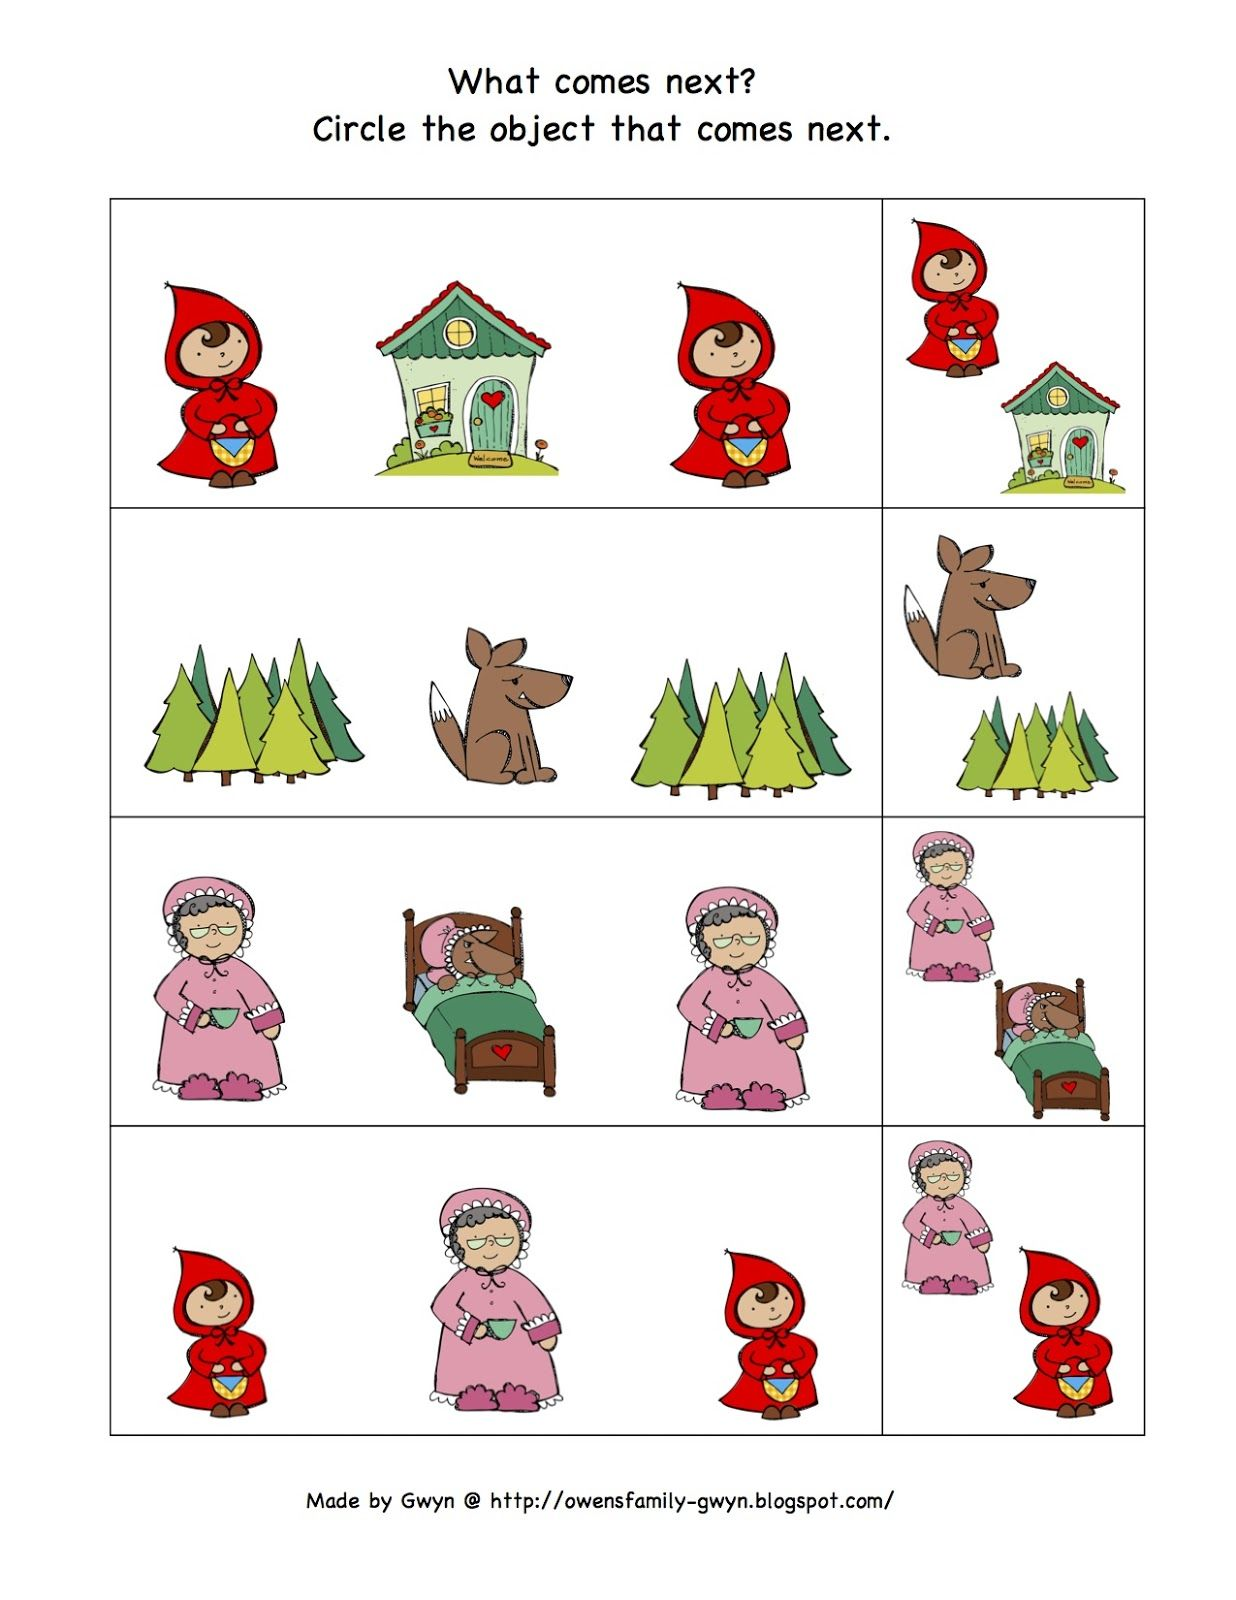 preschool printables fairy tales and fables pinterest preschool printables school and math. Black Bedroom Furniture Sets. Home Design Ideas